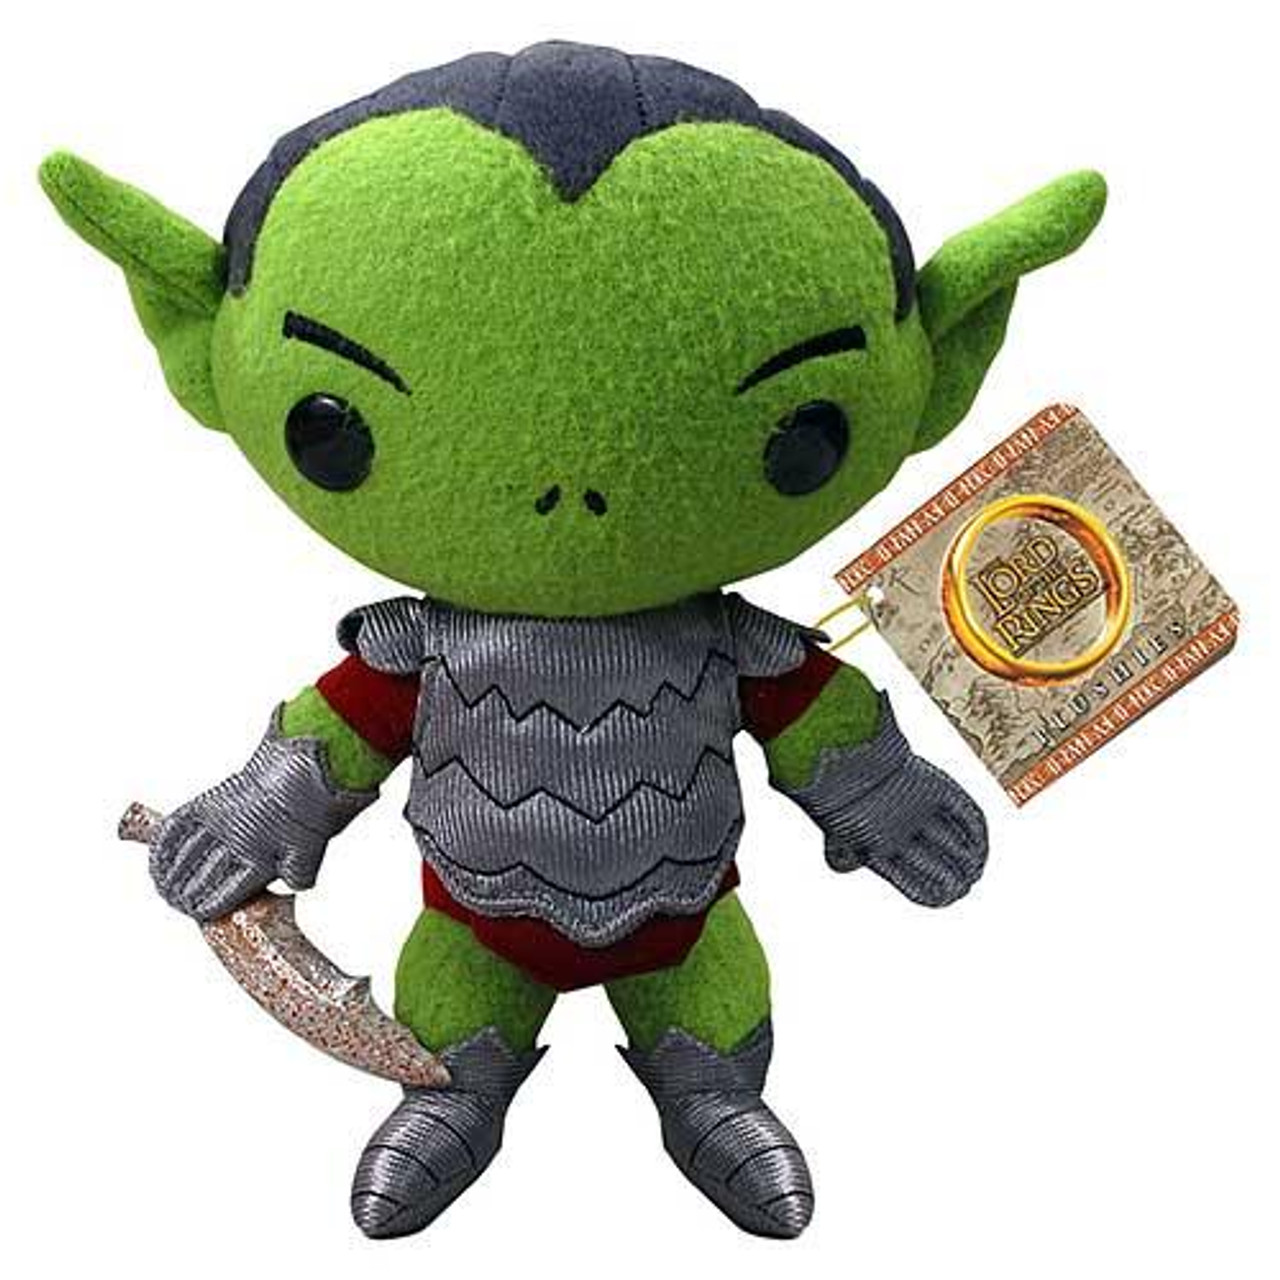 Funko The Lord of the Rings Orc 5-Inch Plushie